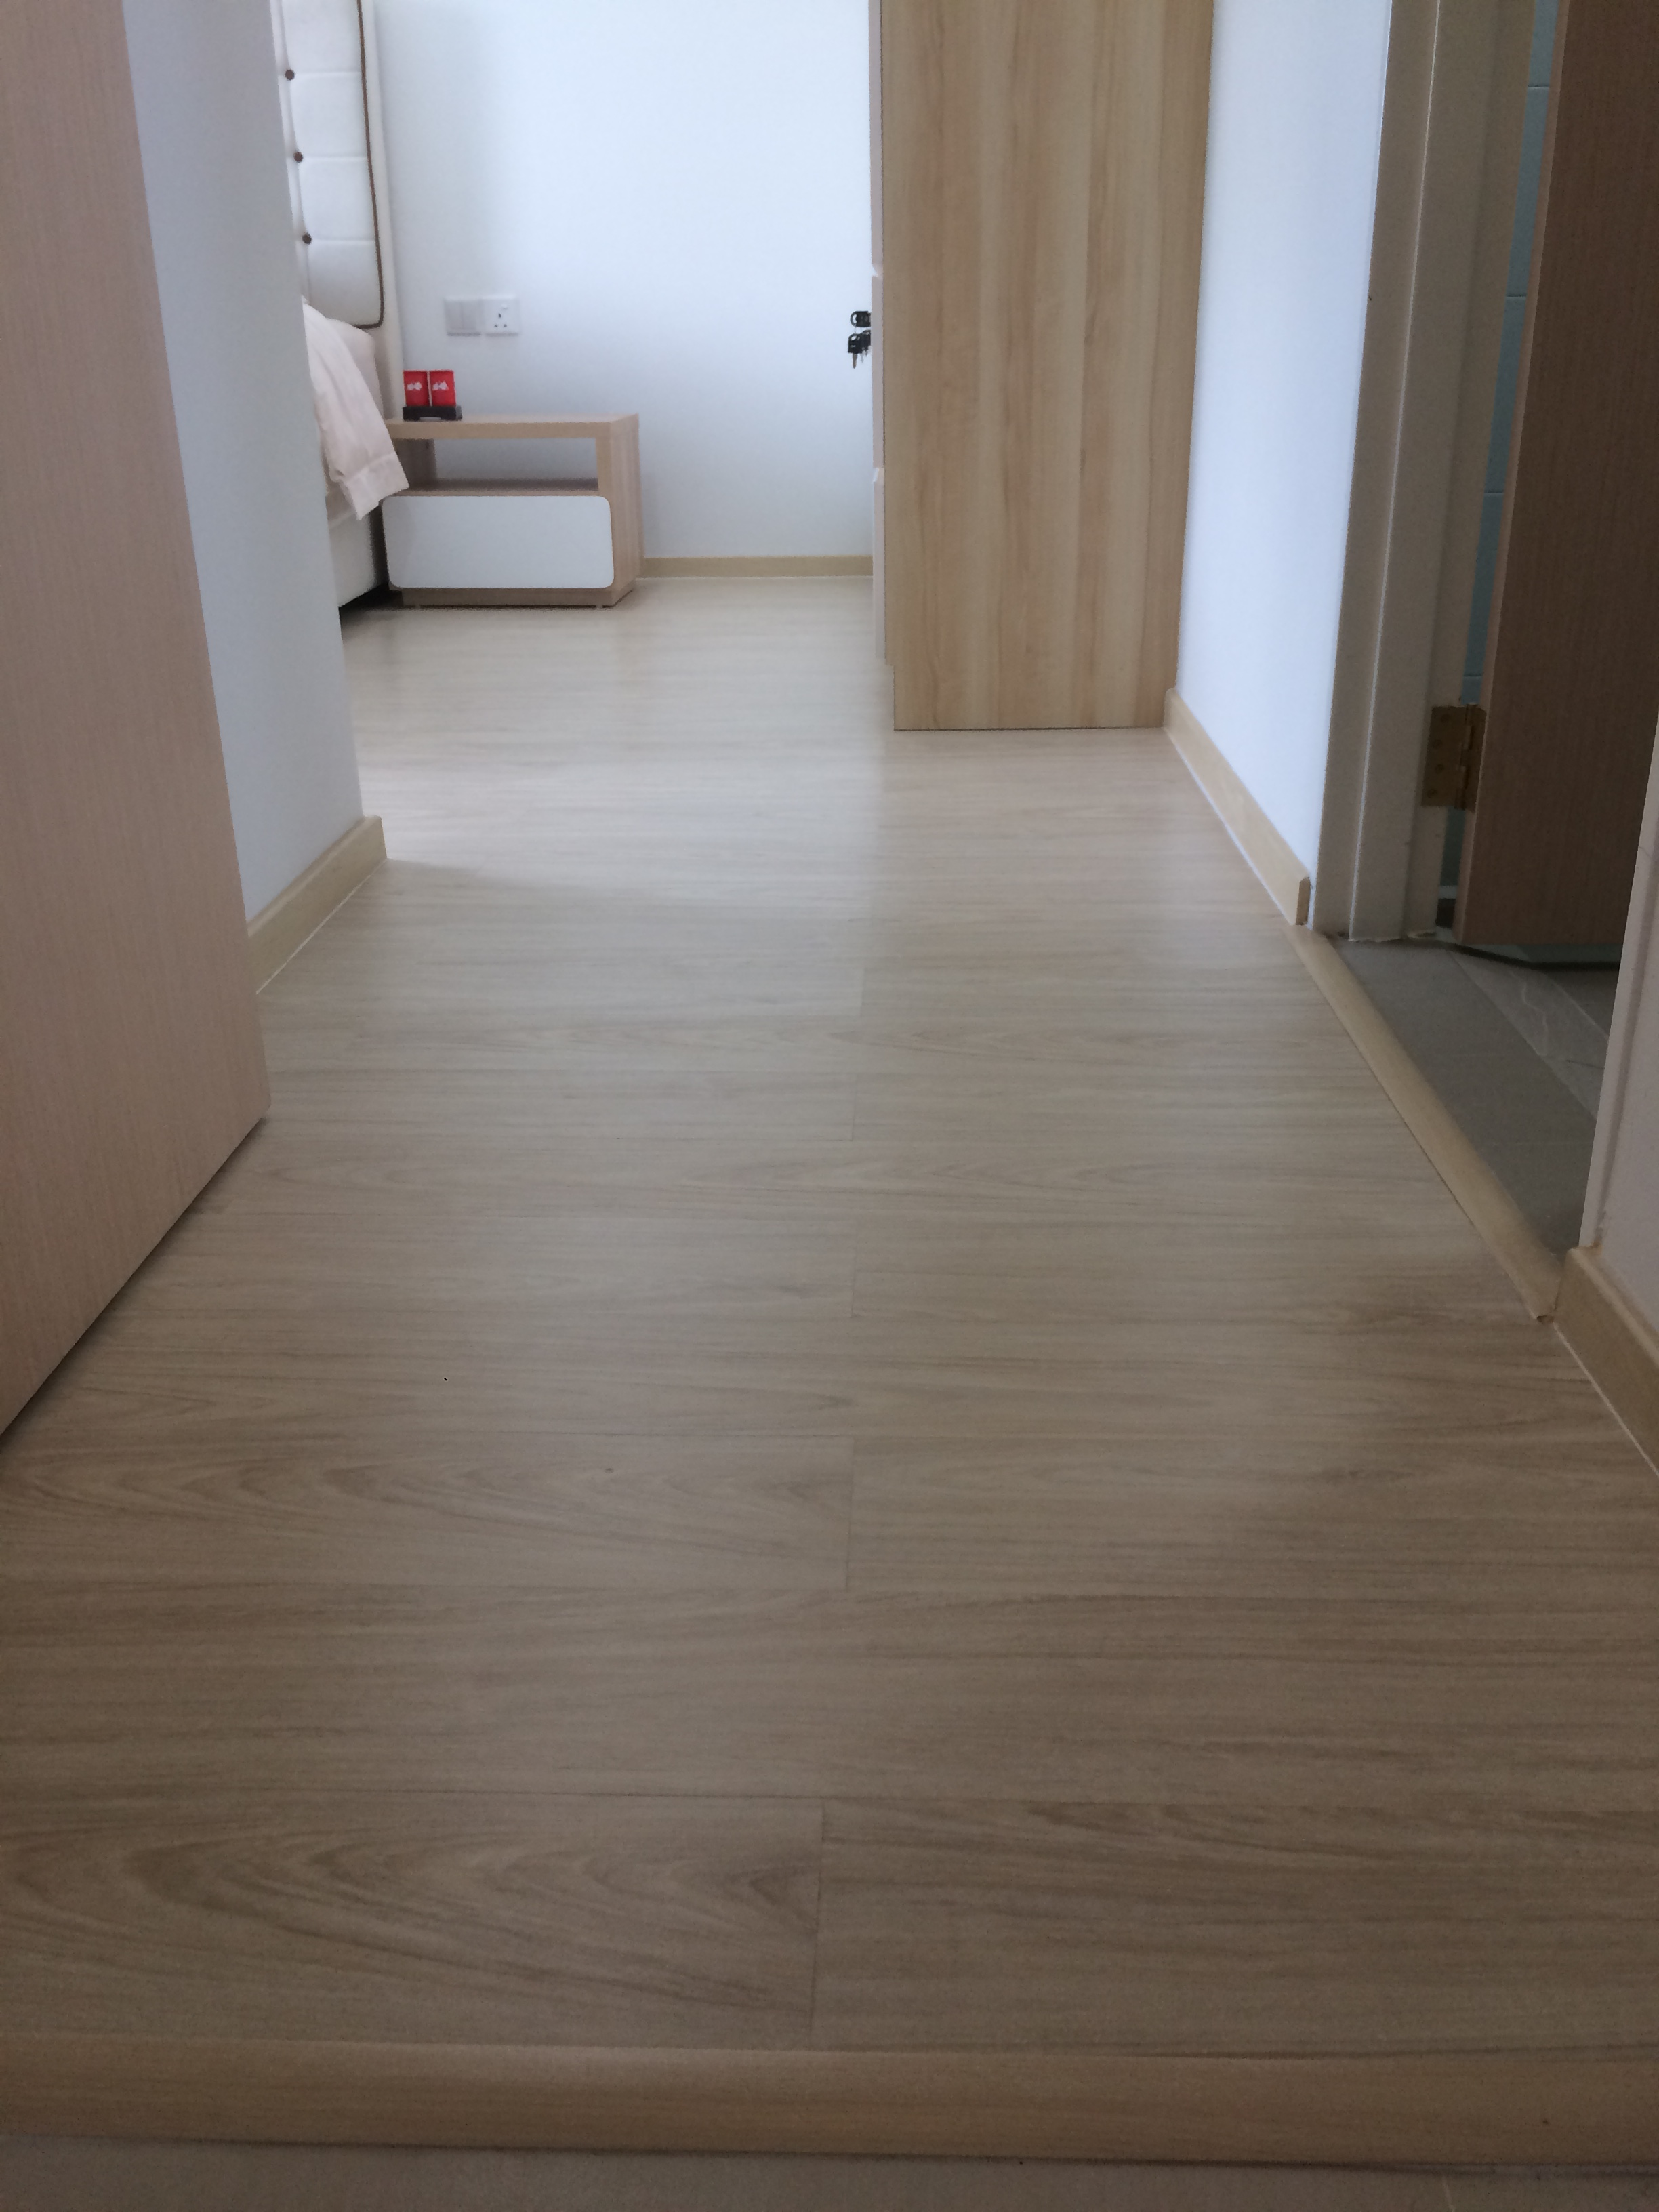 Versatile Flooring Segar Road Hdb 4 Room Quads